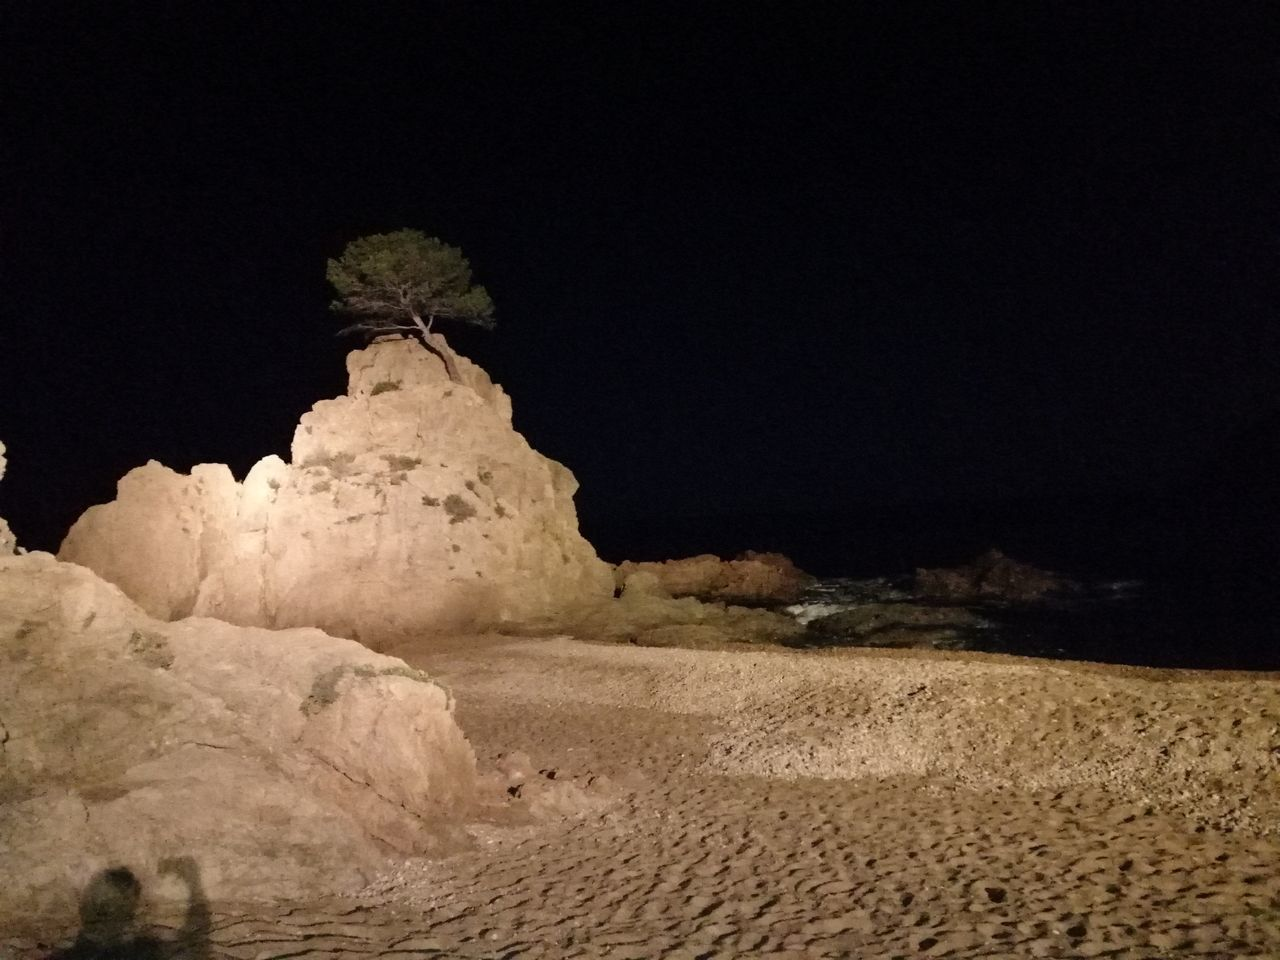 land, desert, sky, night, copy space, nature, no people, rock, tranquility, sand, landscape, scenics - nature, rock - object, beauty in nature, solid, environment, tranquil scene, clear sky, outdoors, rock formation, climate, arid climate